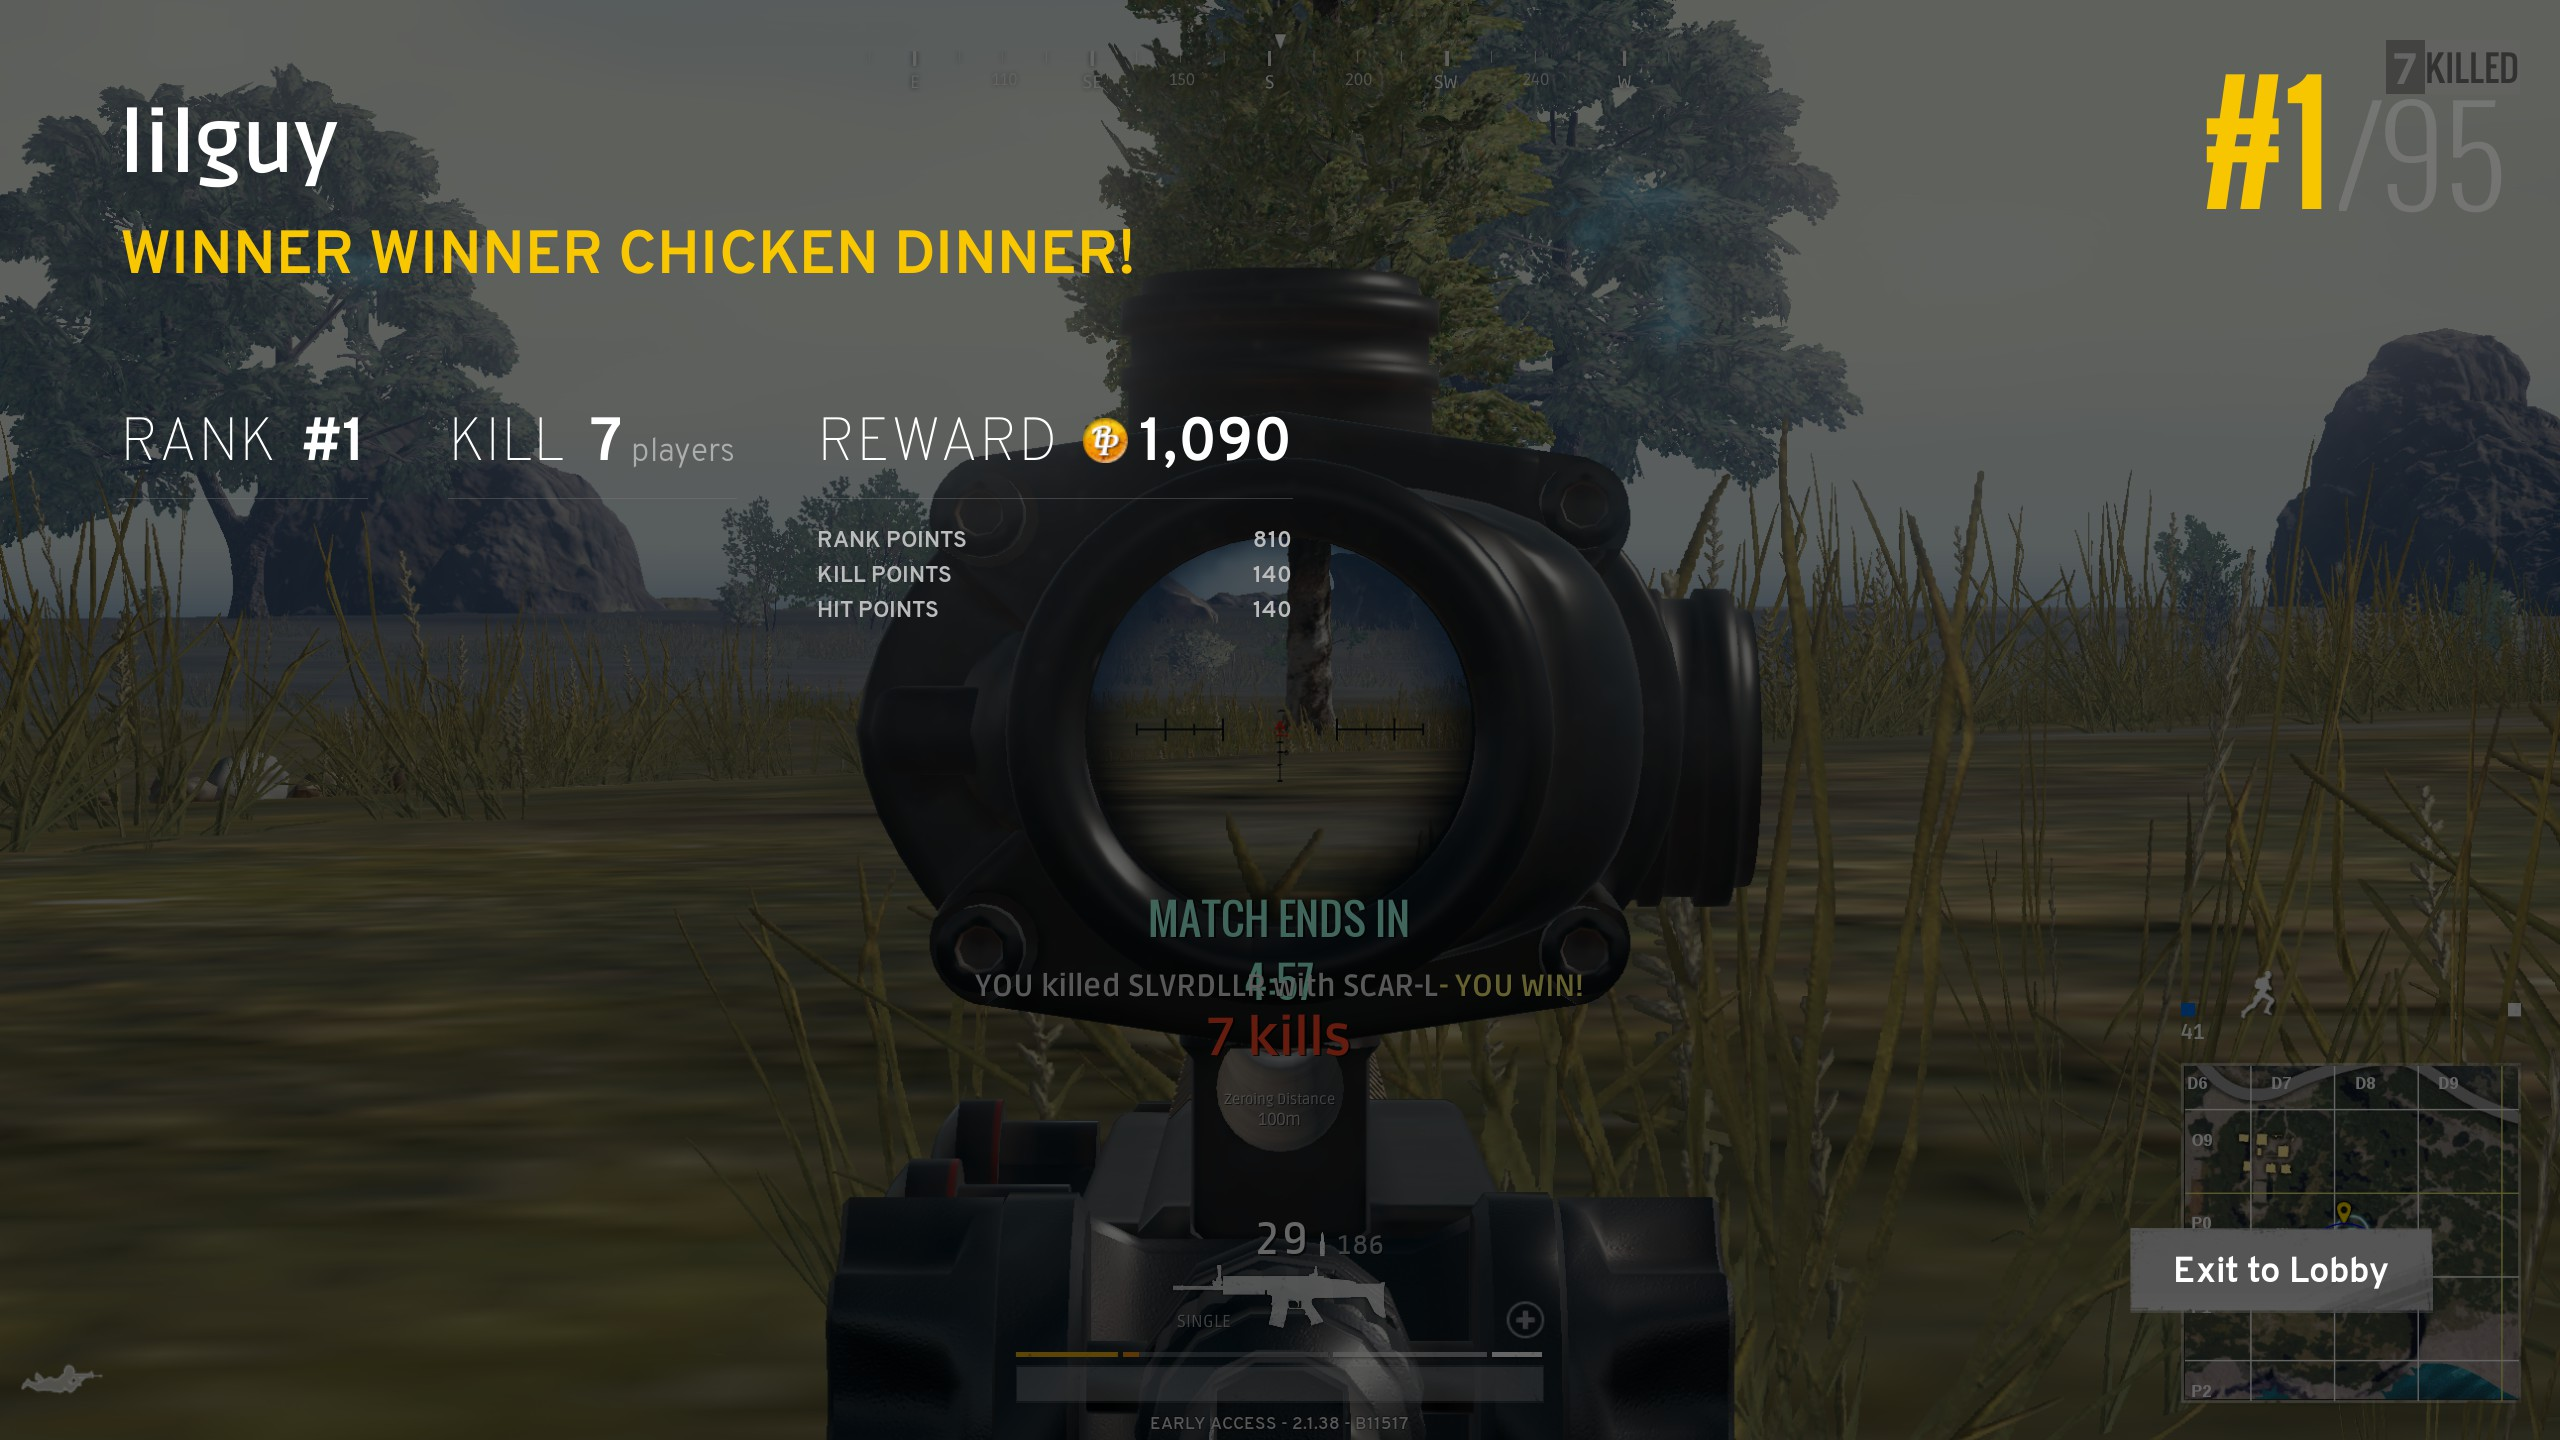 PLAYERUNKNOWN'S BATTLEGROUNDS - This game has a very